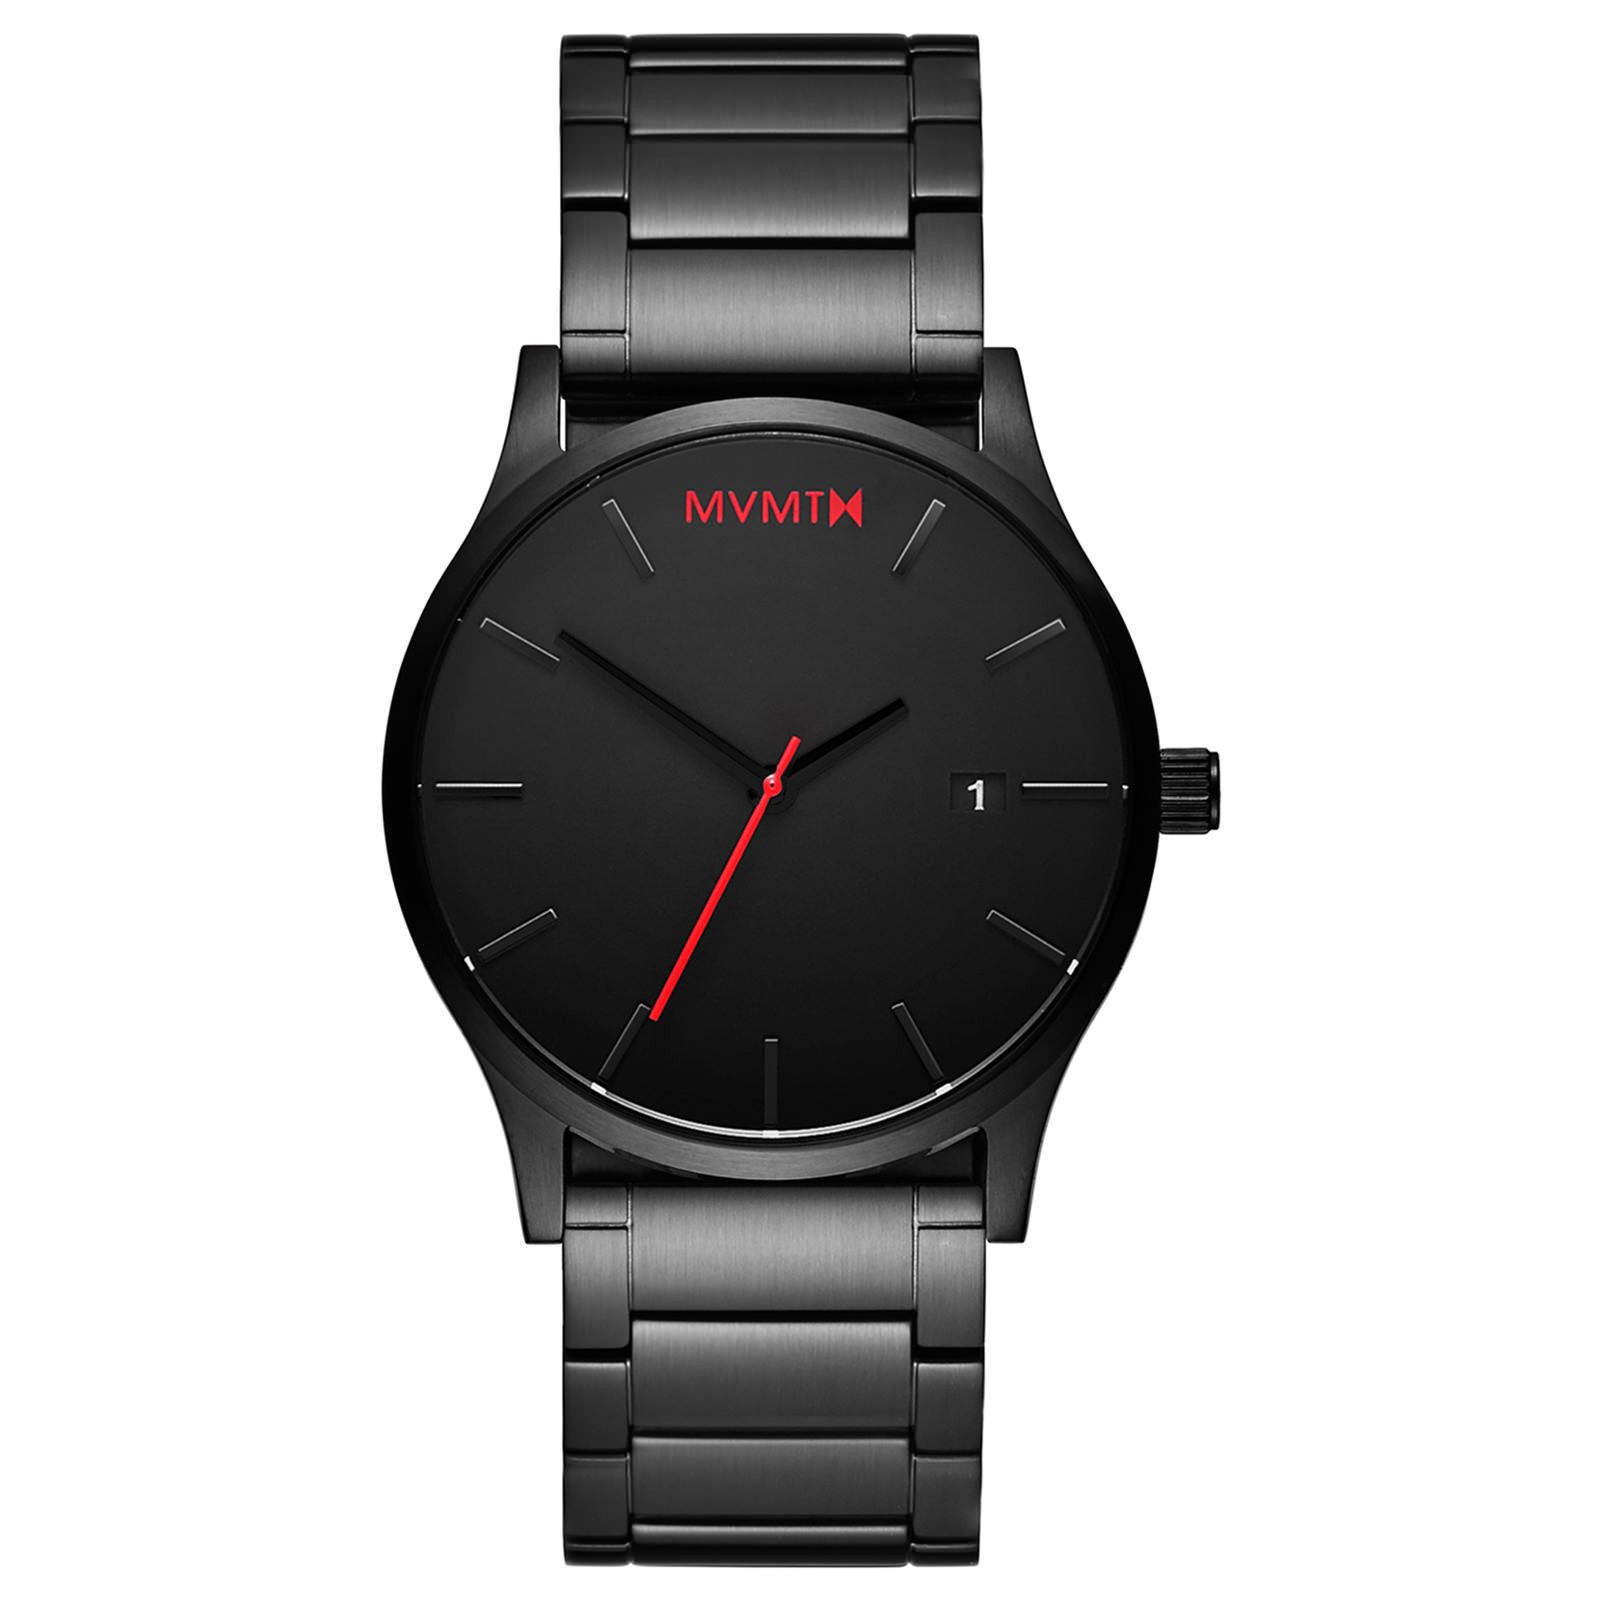 watches pin simpl and watch black clockwize minimal uk by classic from